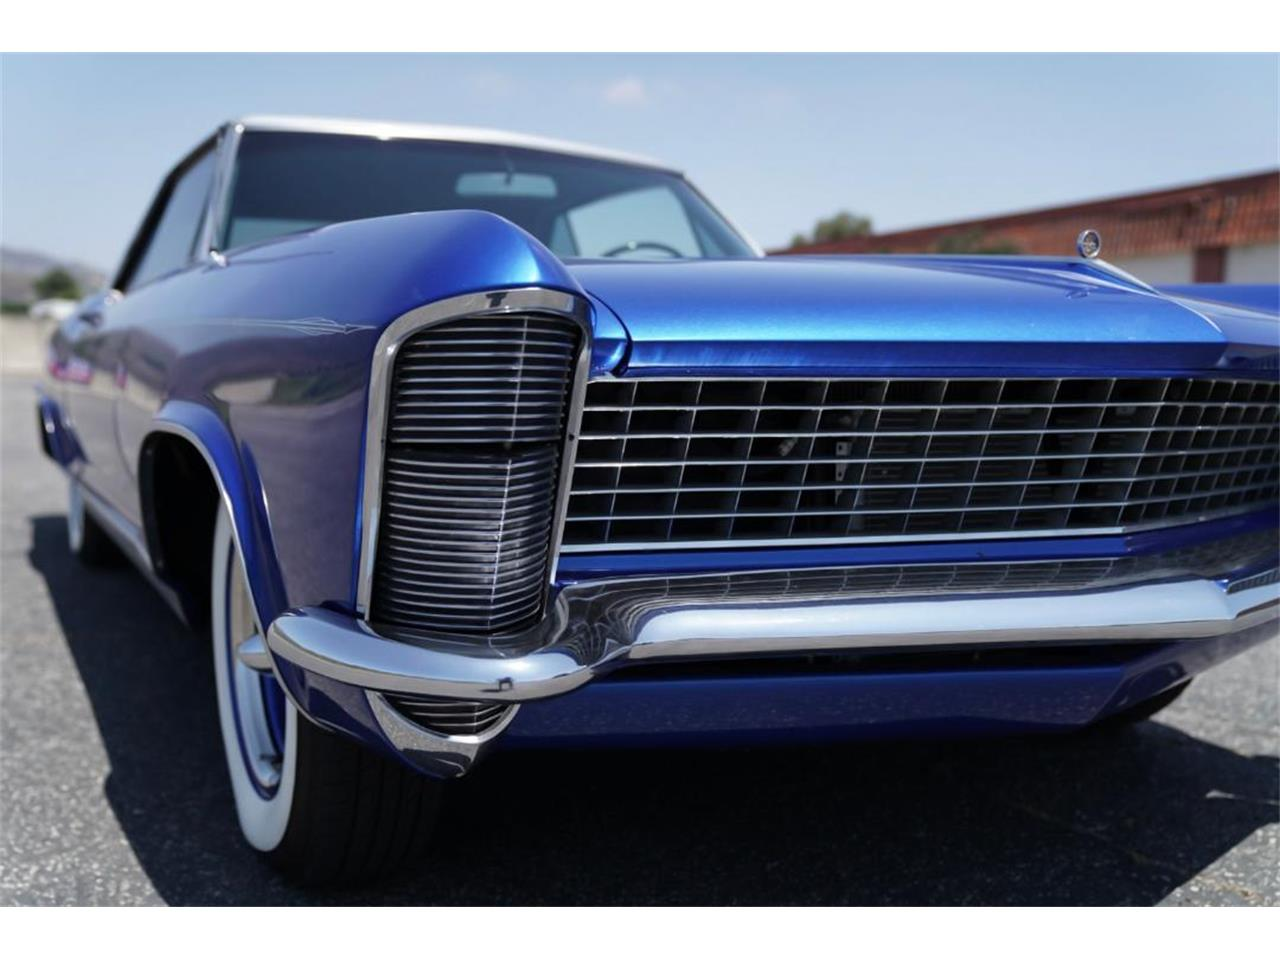 Large Picture of Classic 1965 Buick Riviera - $27,499.00 Offered by a Private Seller - QHFP